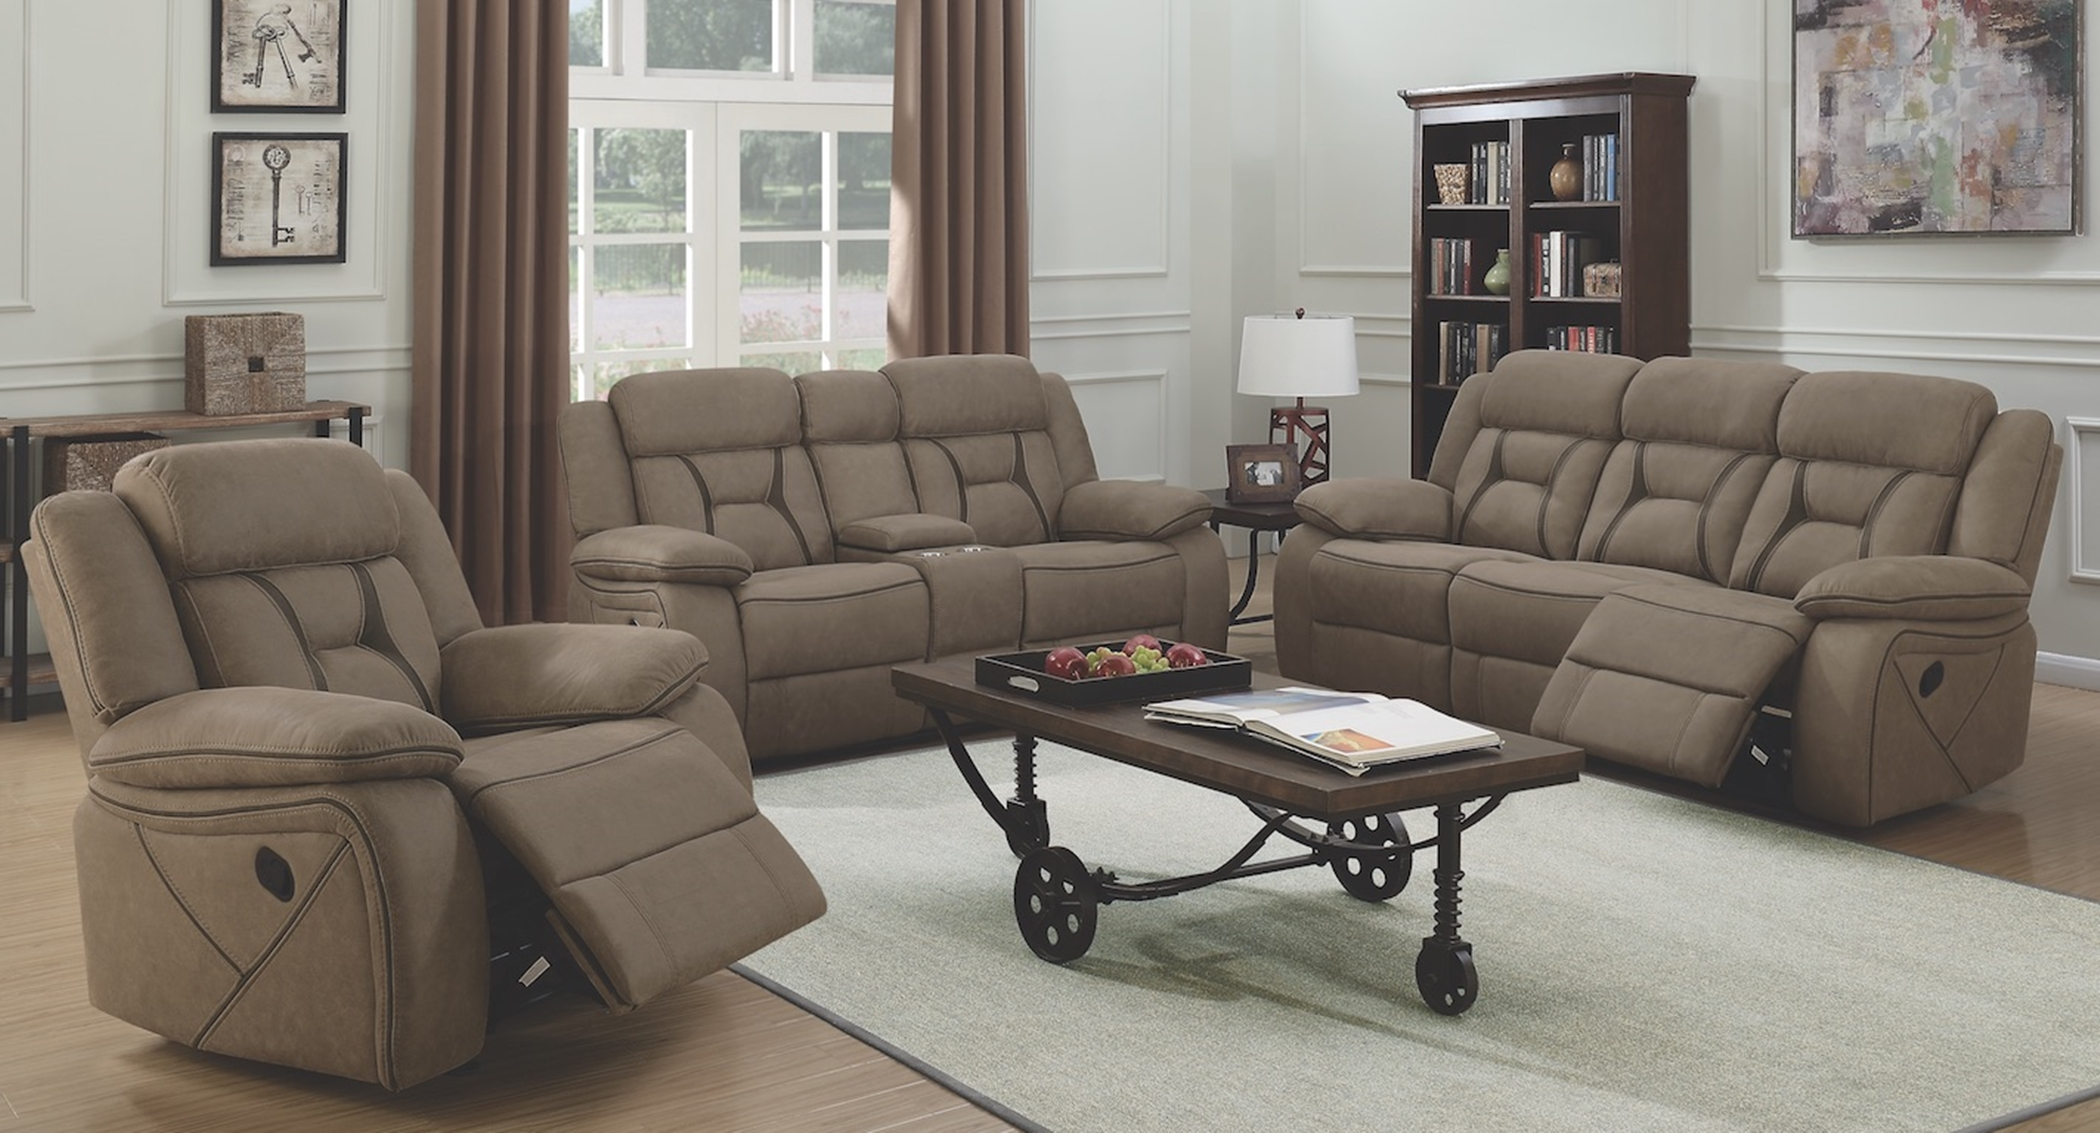 Houston Casual Tan Reclining Three-Piece